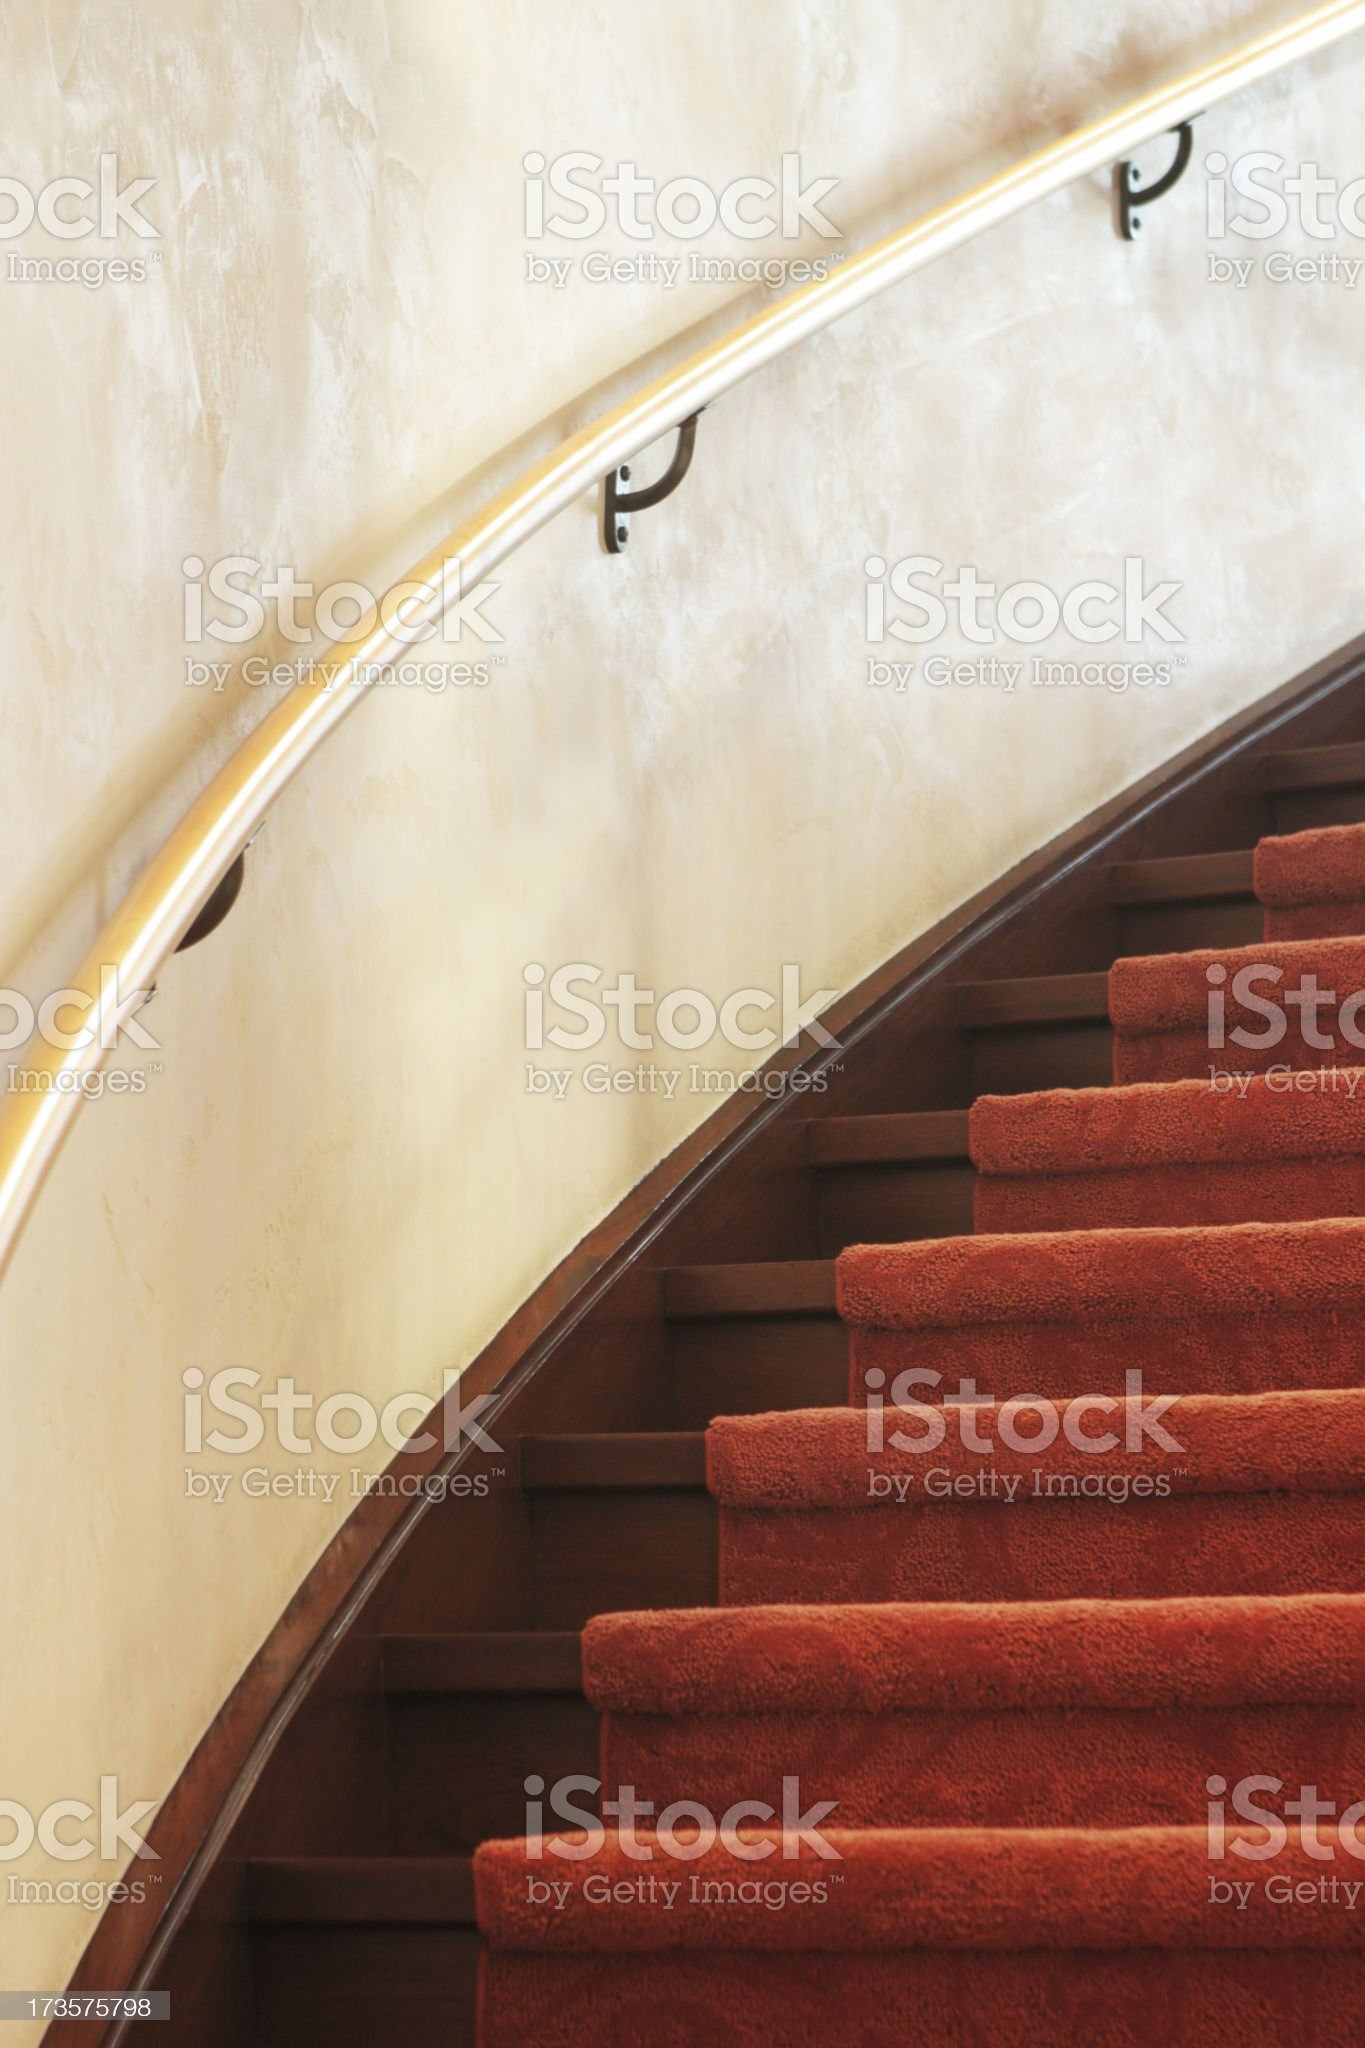 Spiral Staircase Carpet Railing Interior Decor royalty-free stock photo